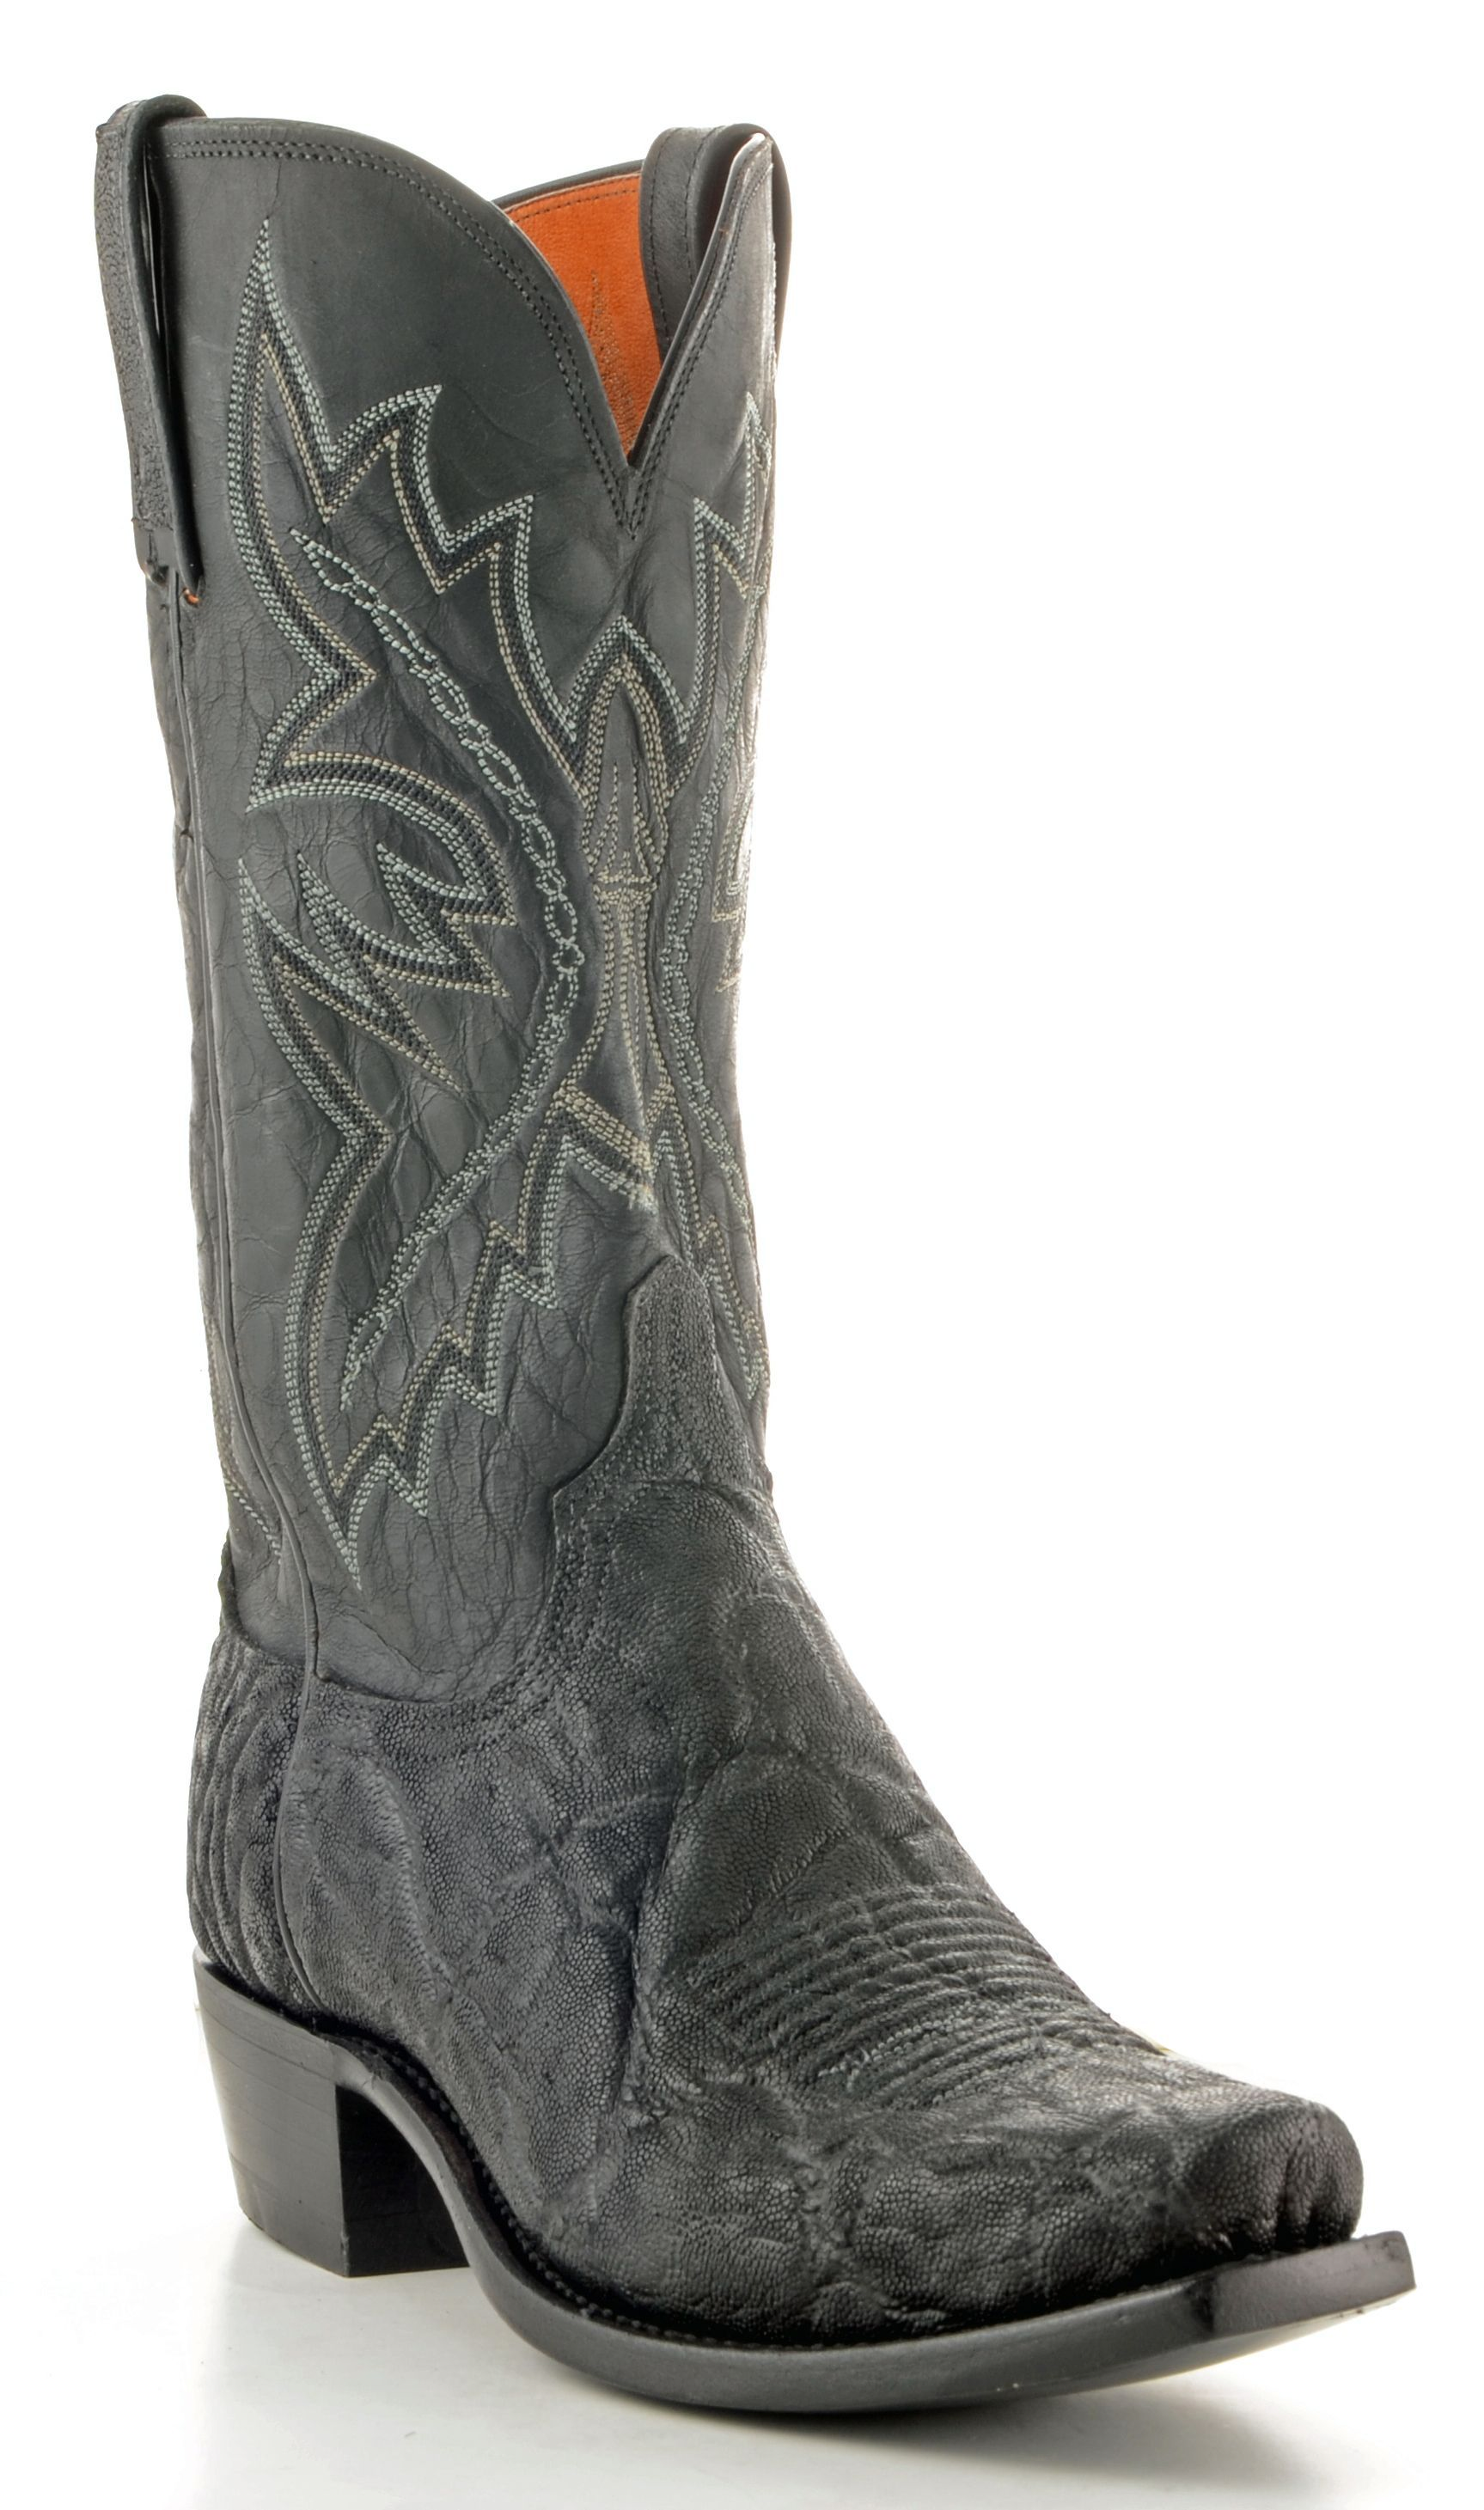 dbf065eed4 Luchasse Elephant skin boots made in America!